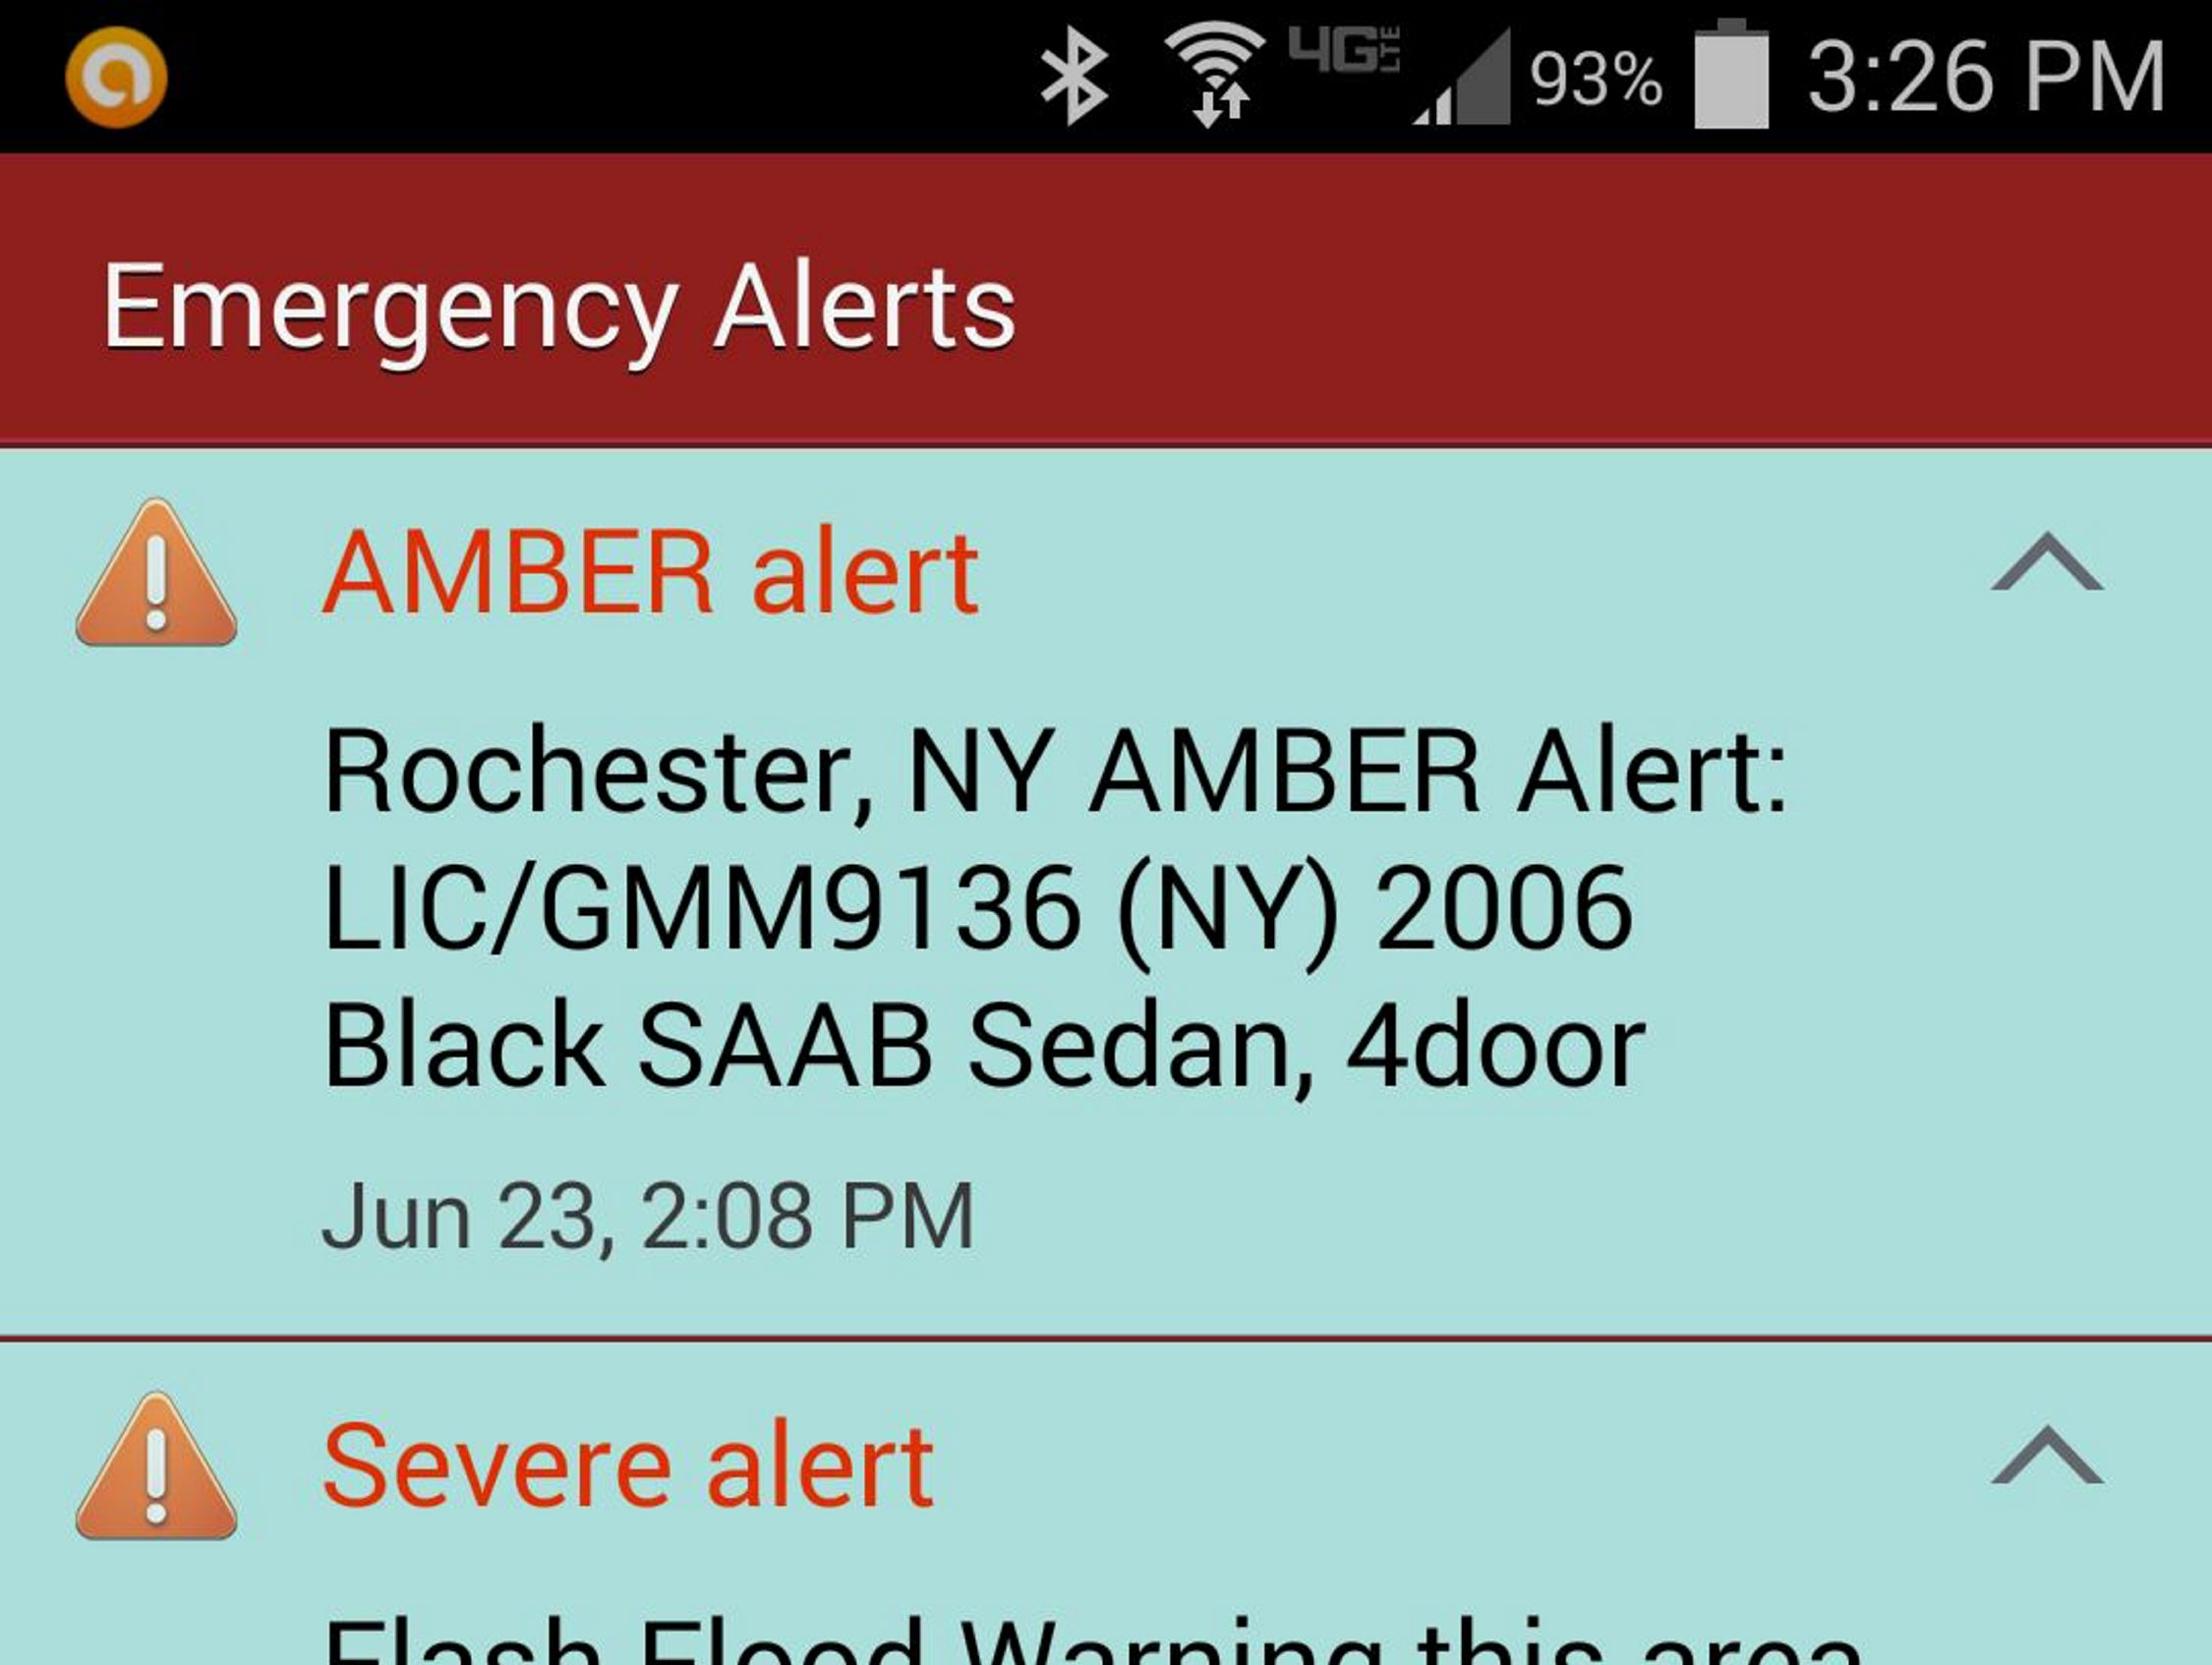 The Amber Alert as it appeared on an Android device.